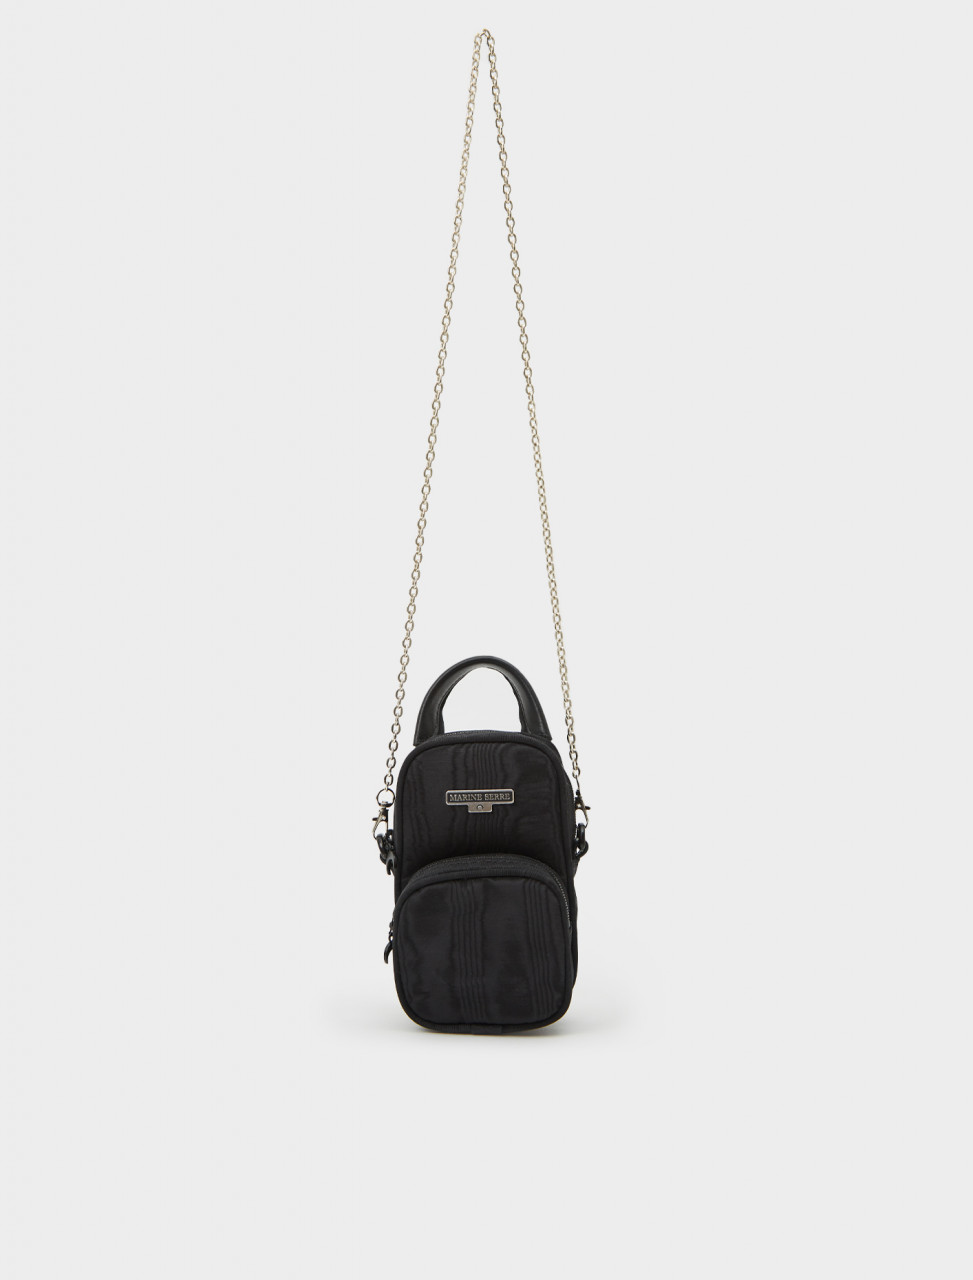 Front view of Marine Serre Mini Pocket Bag in Black